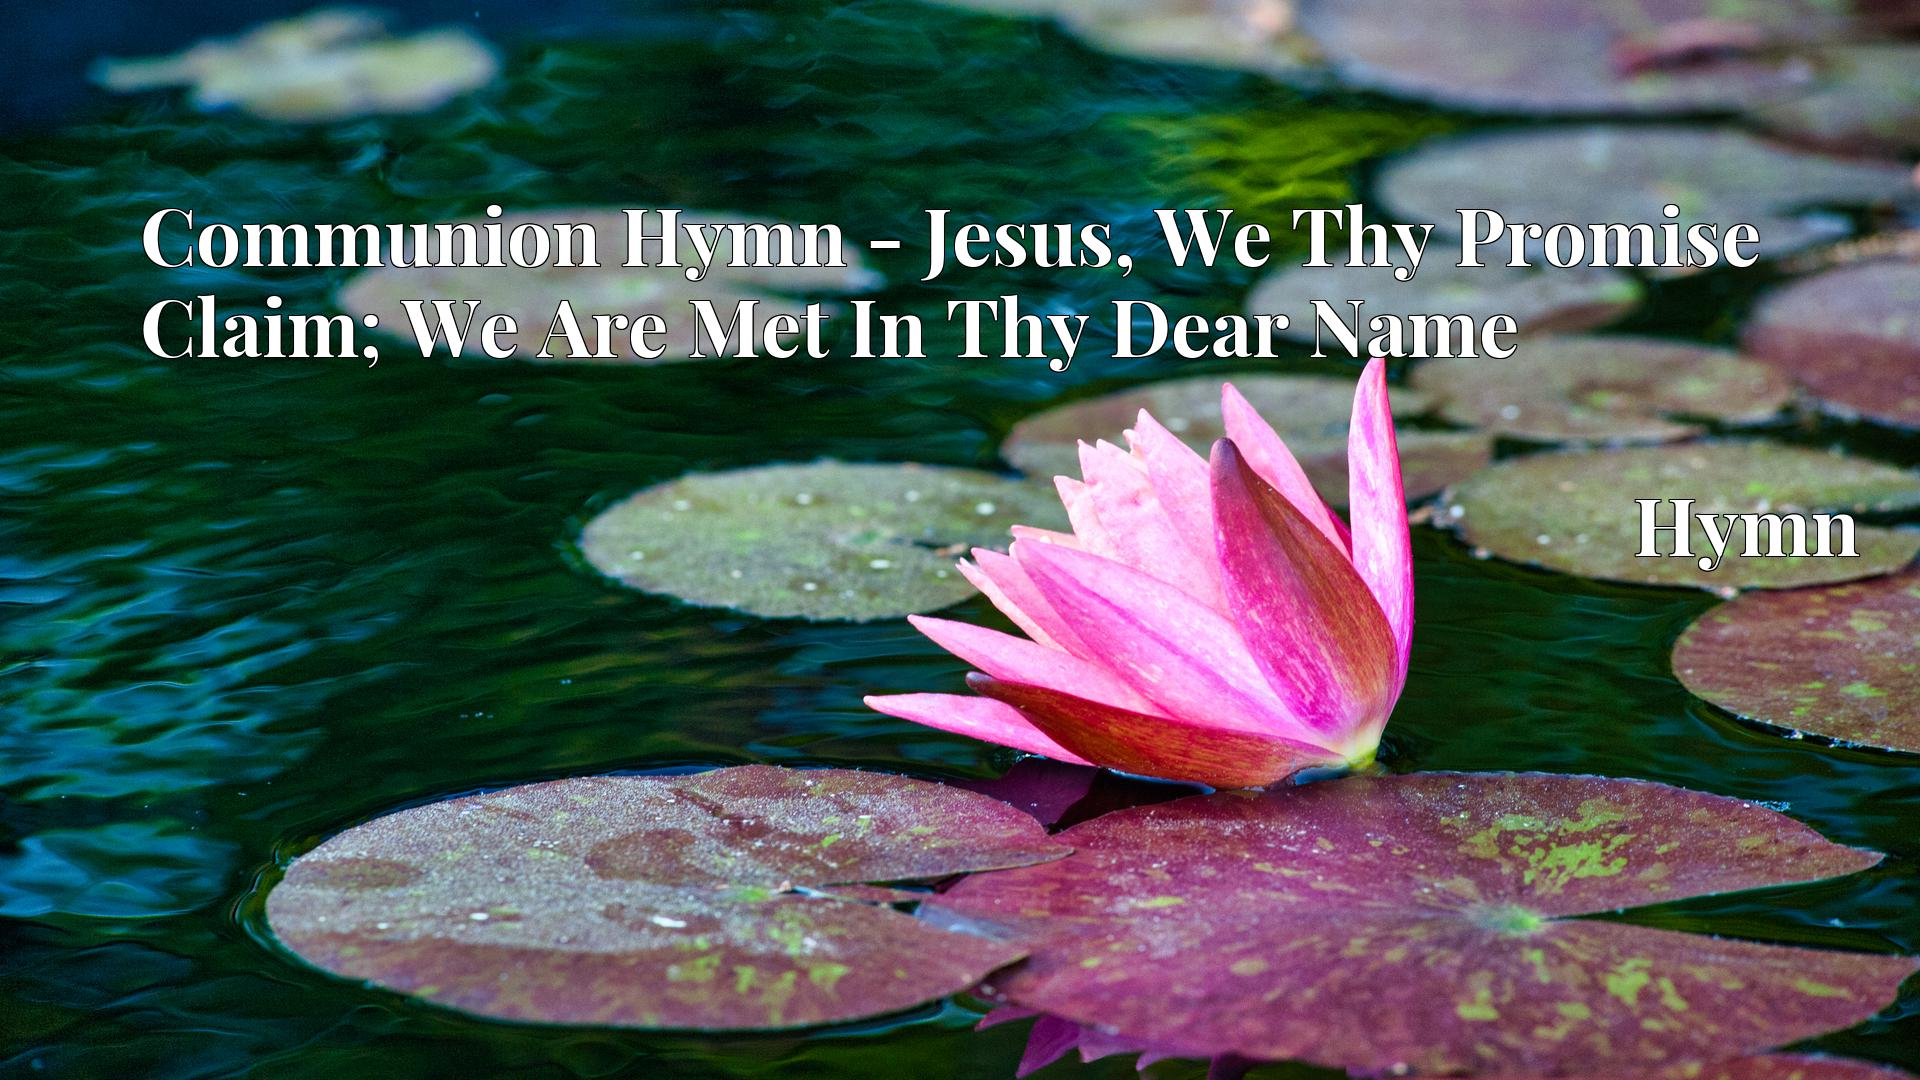 Communion Hymn - Jesus, We Thy Promise Claim; We Are Met In Thy Dear Name - Hymn